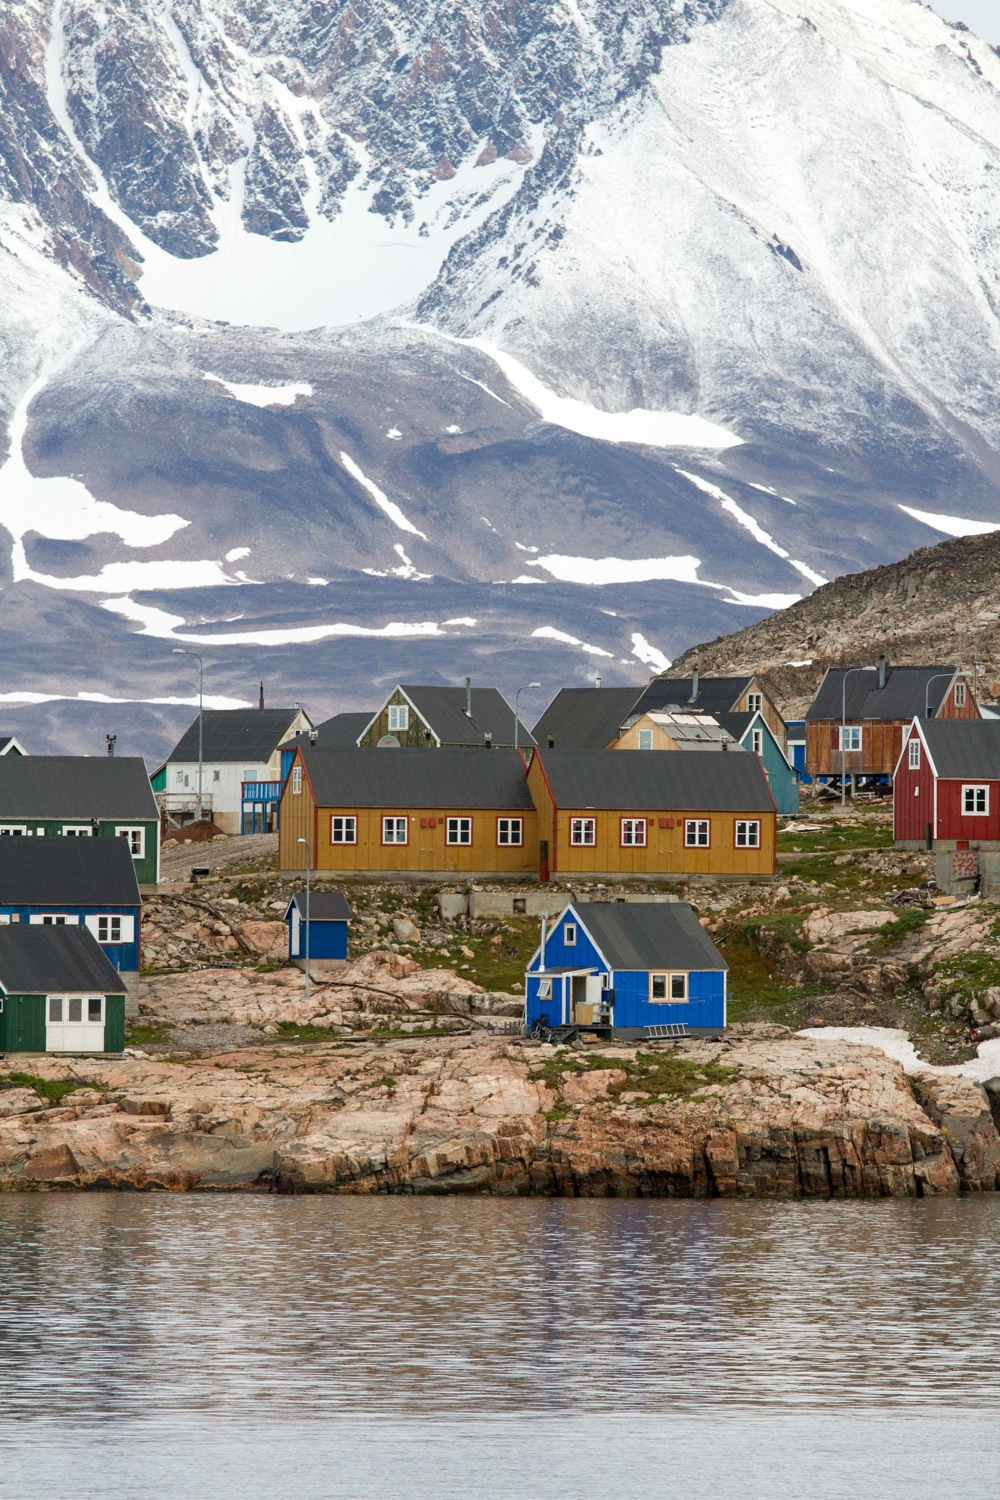 The charming Greenland village of Ittoqqortoormiit, where locals thrive even in punishing Arctic conditions, after the storm. Photo: Daven Hafey